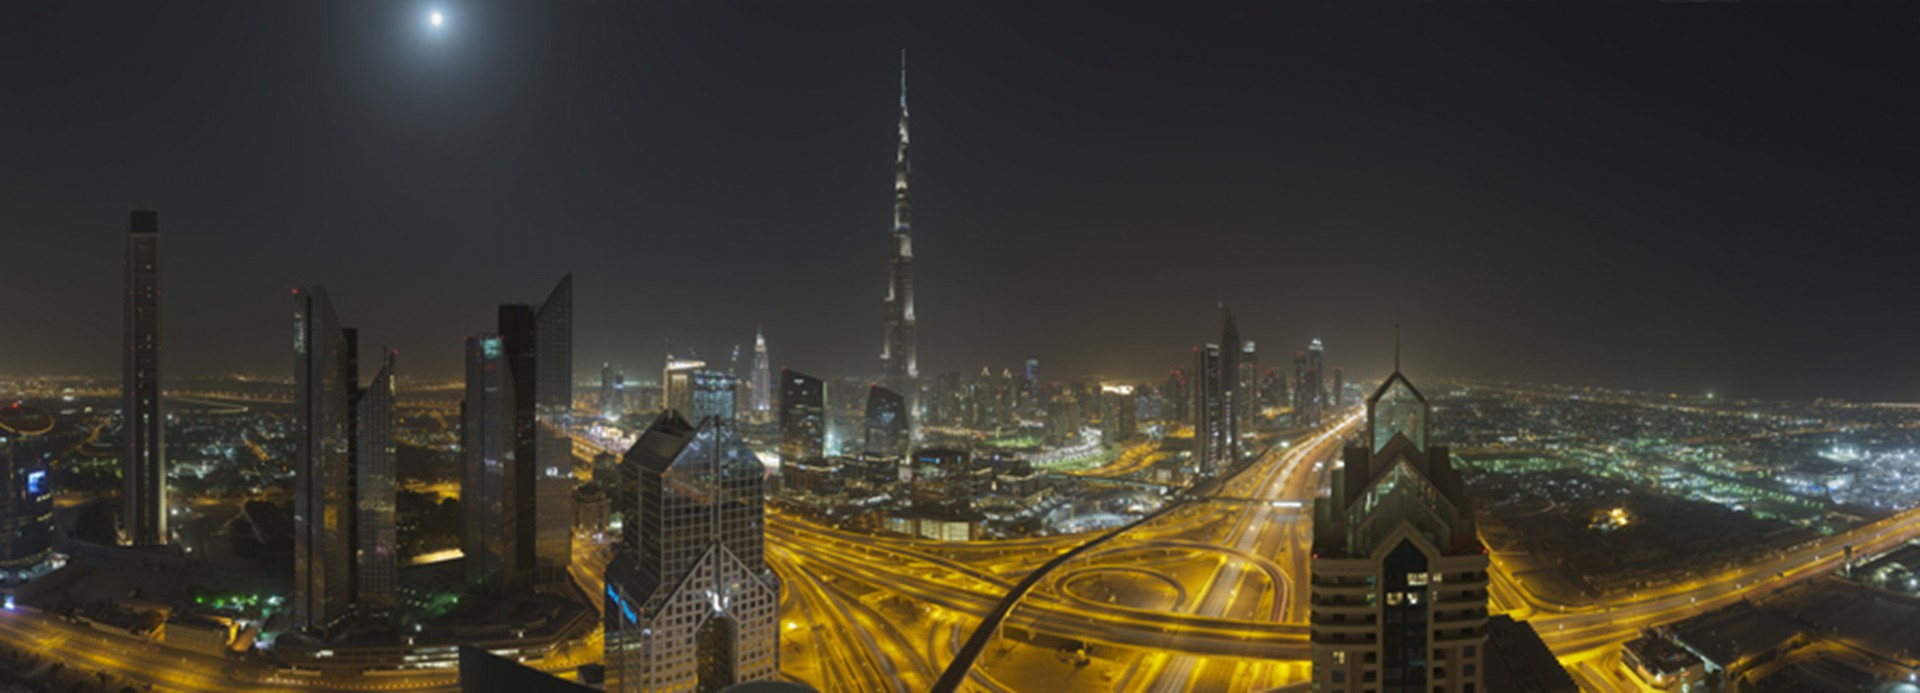 Sheikh Zayed Road, Downtown at night. 25°12'28''N 55°16'15''E